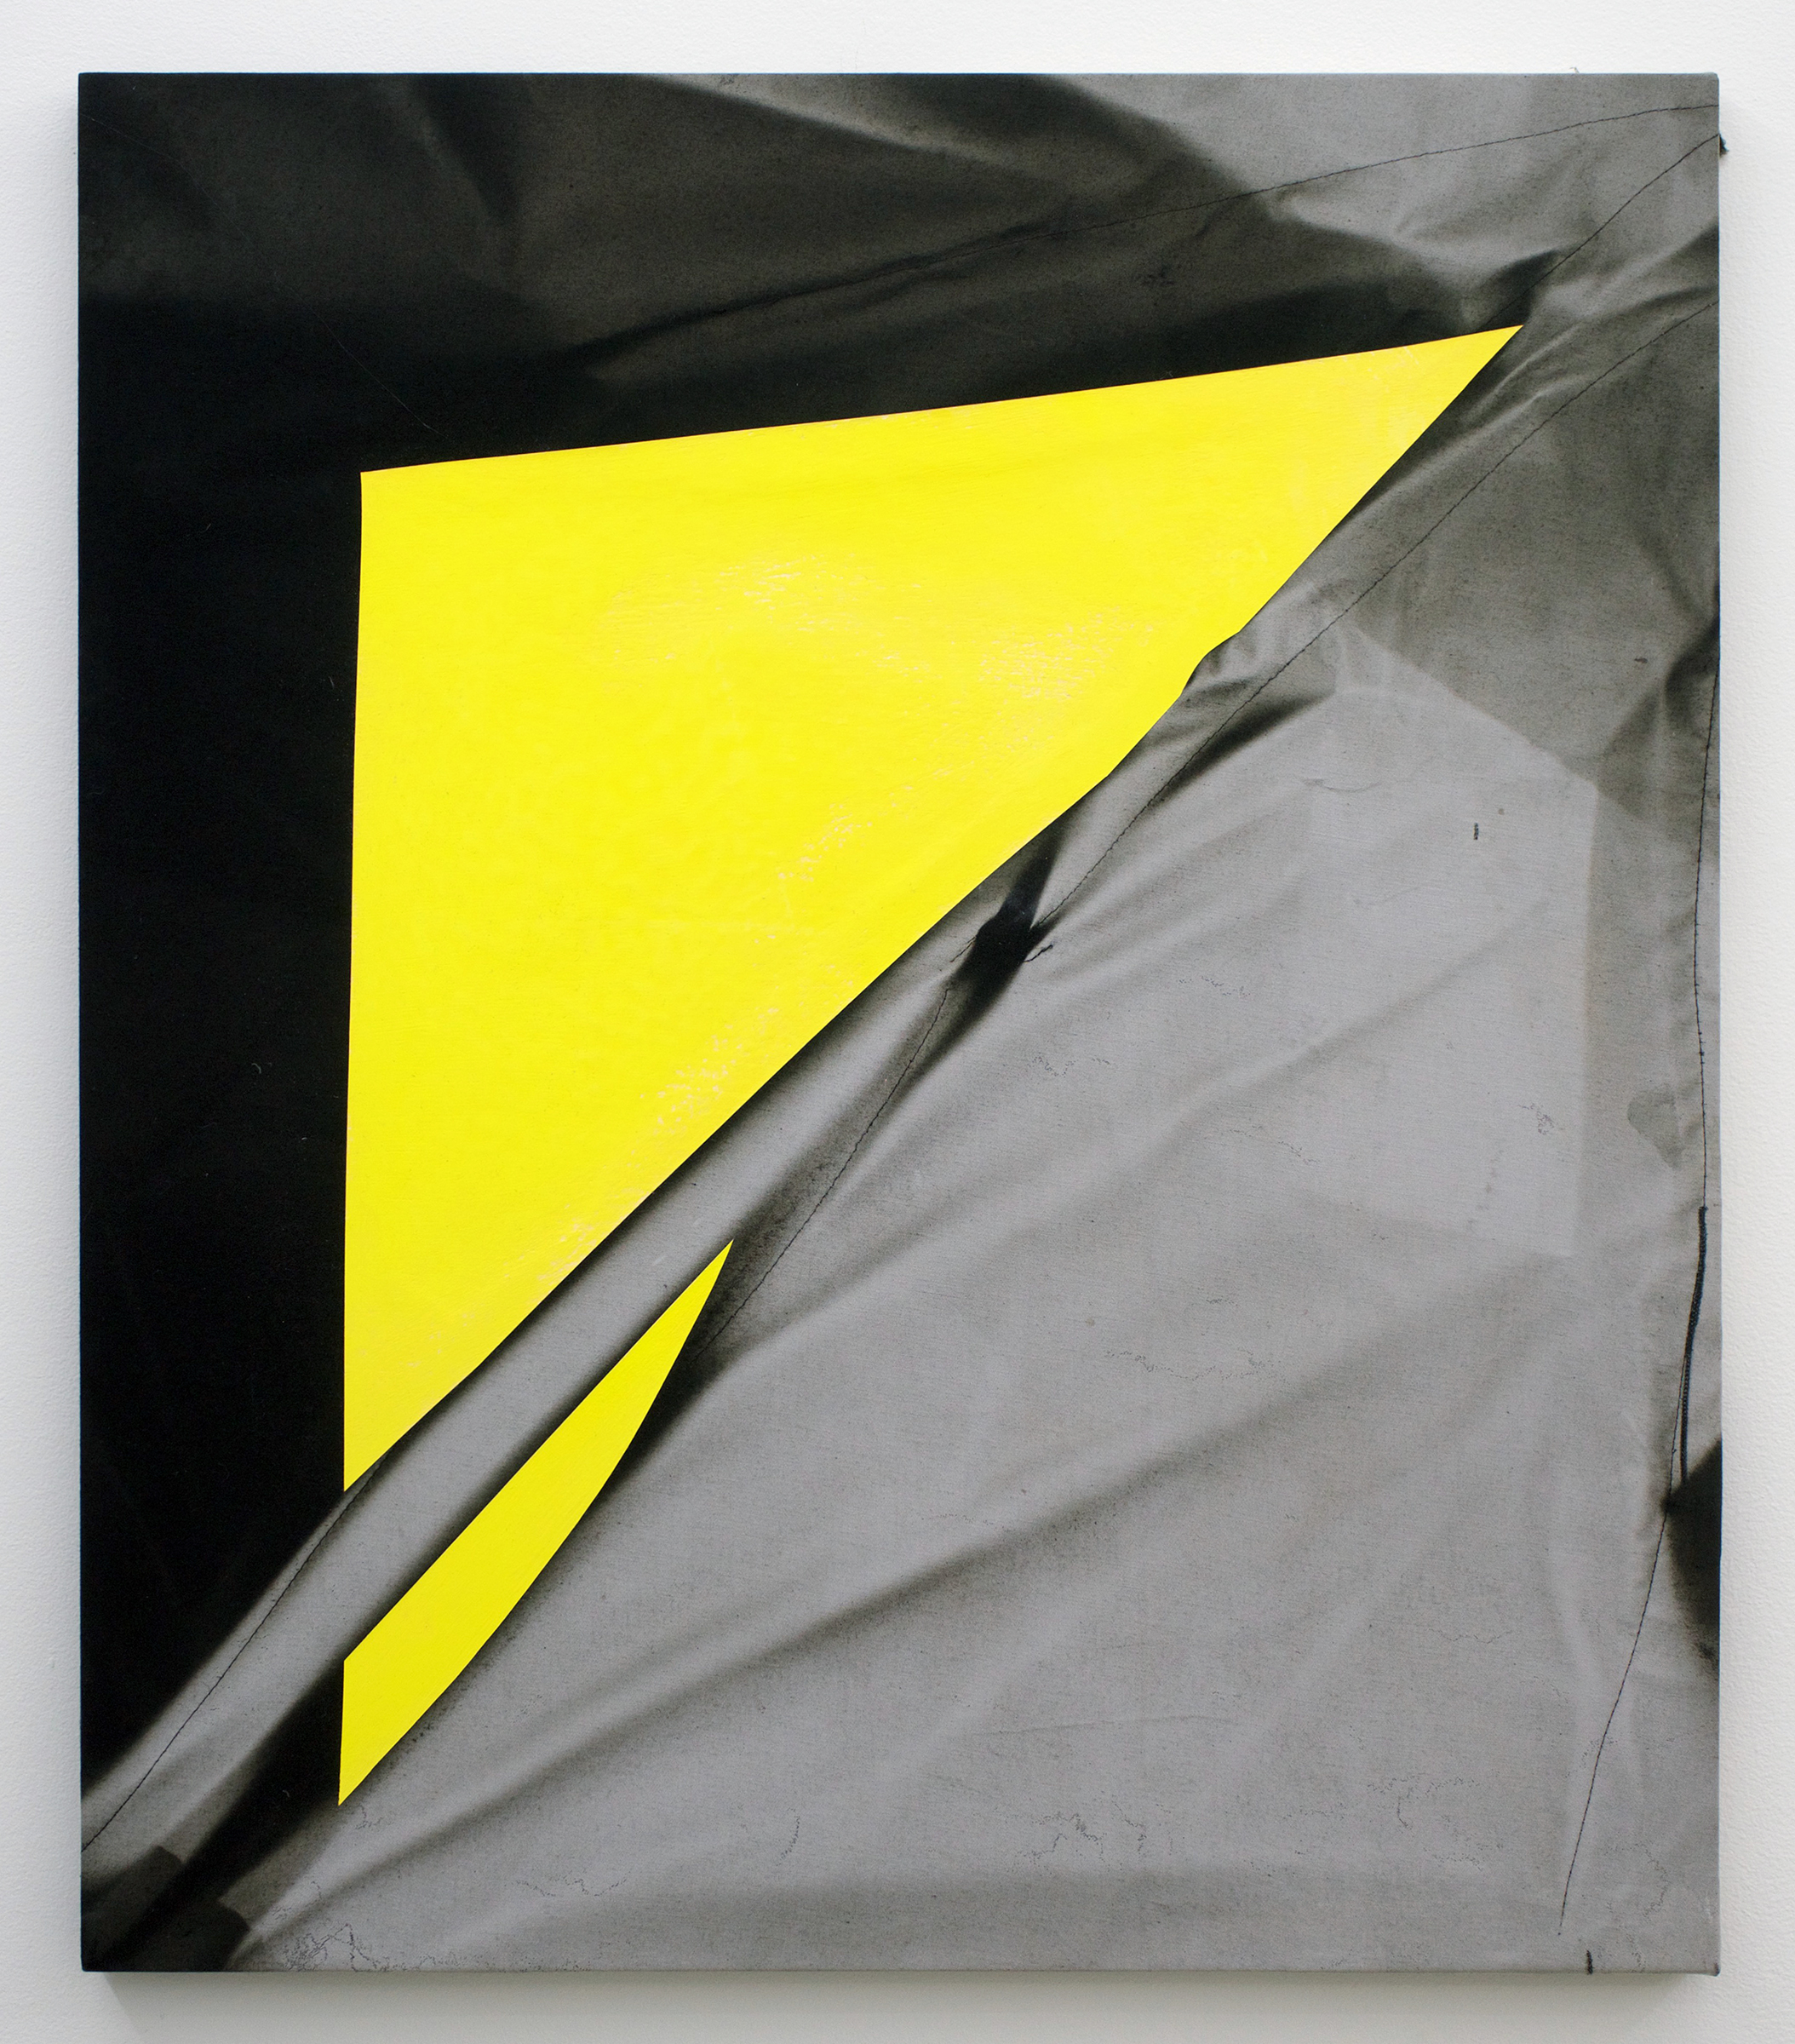 """CHRIS DUNCAN   Yellow (Winter to Summer, 2016) six-month exposure/Headlands , 2016, sun, time and acrylic on fabric, 28"""" x 24"""""""